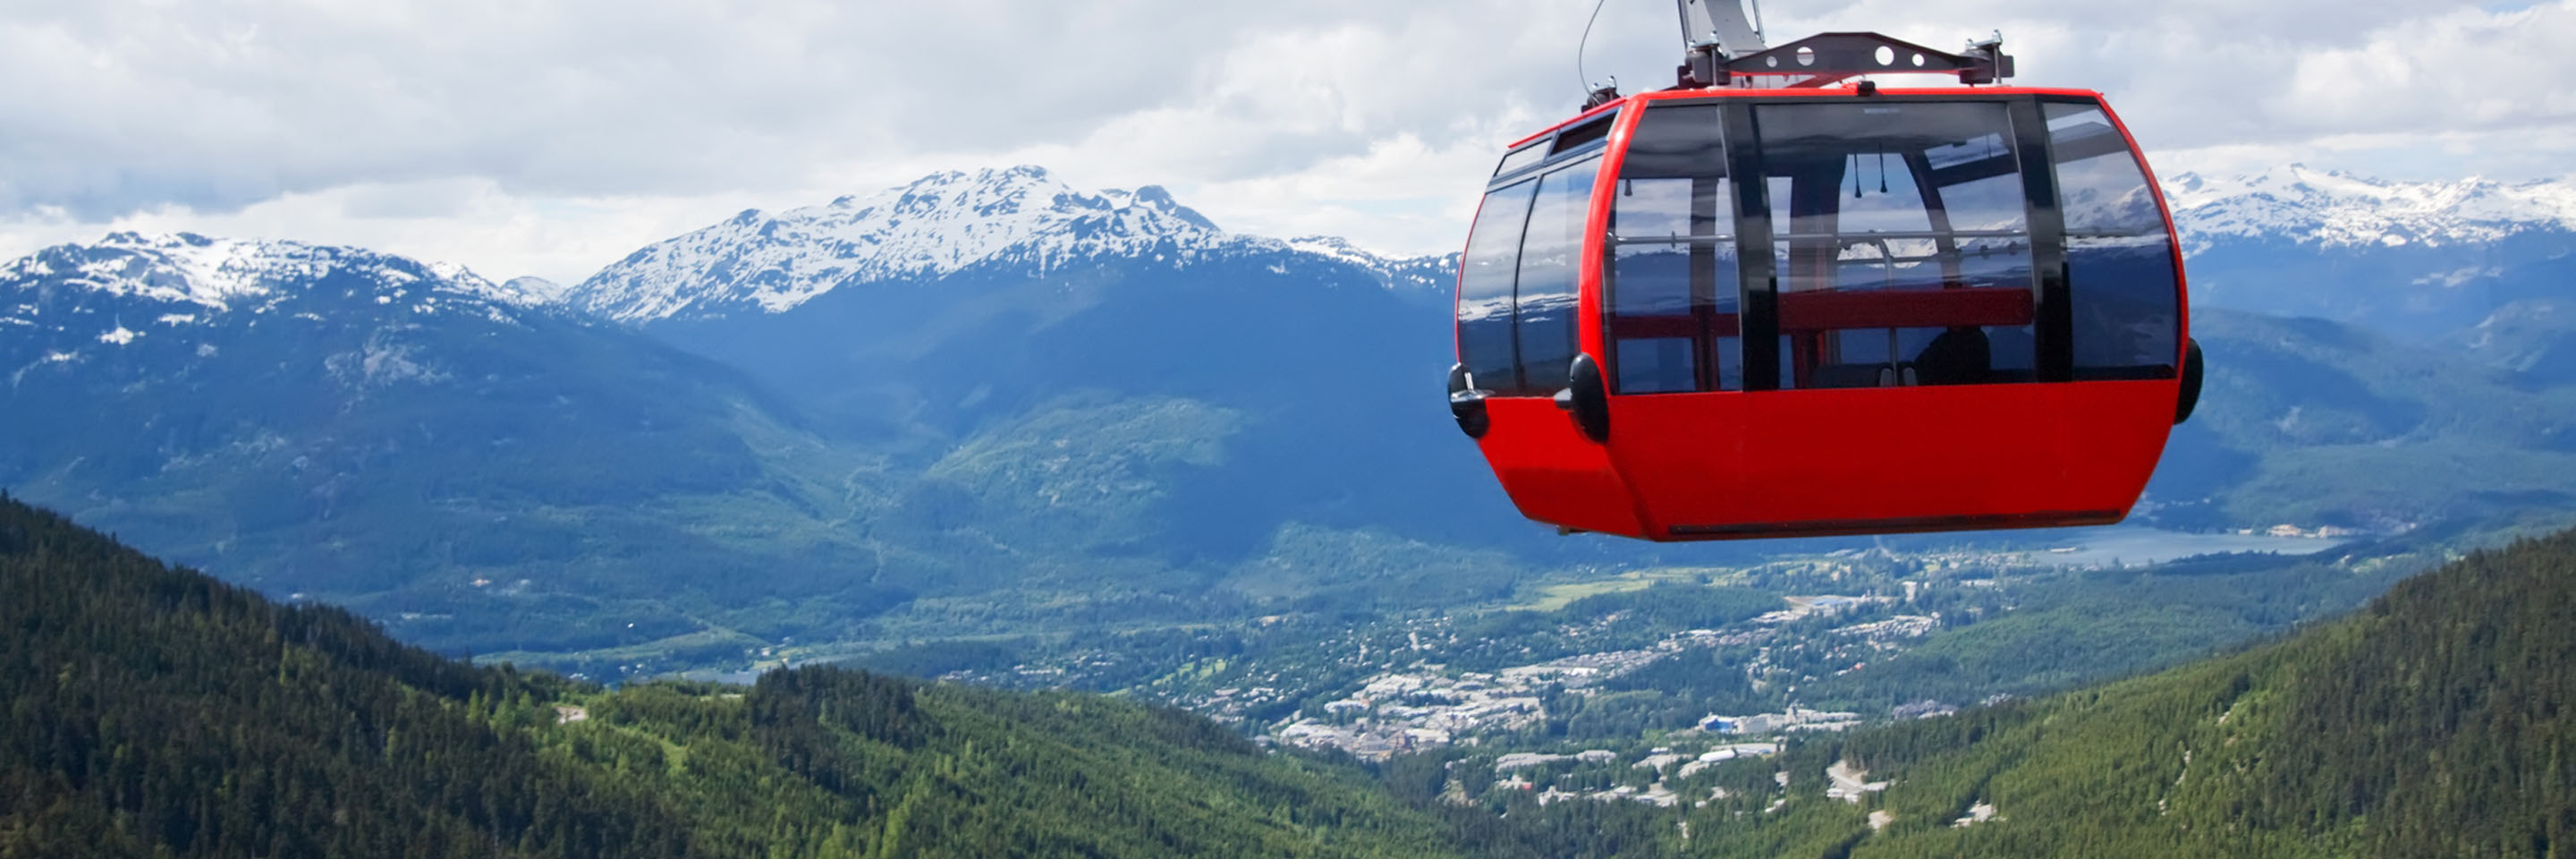 Vancouver Canada guided tours